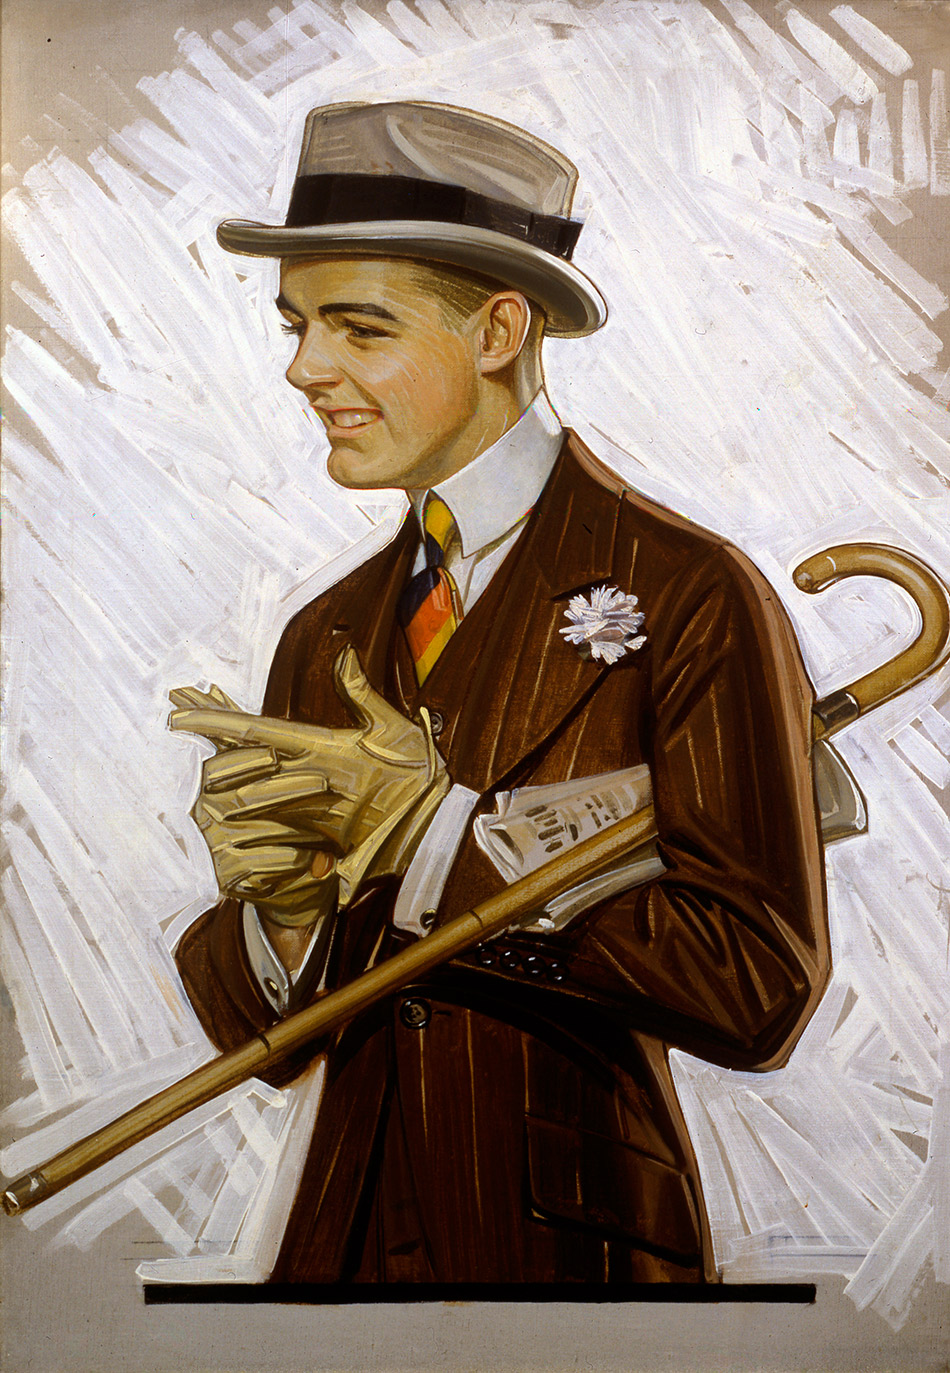 Man-with-Cane-and-Gloves_HR_950-W